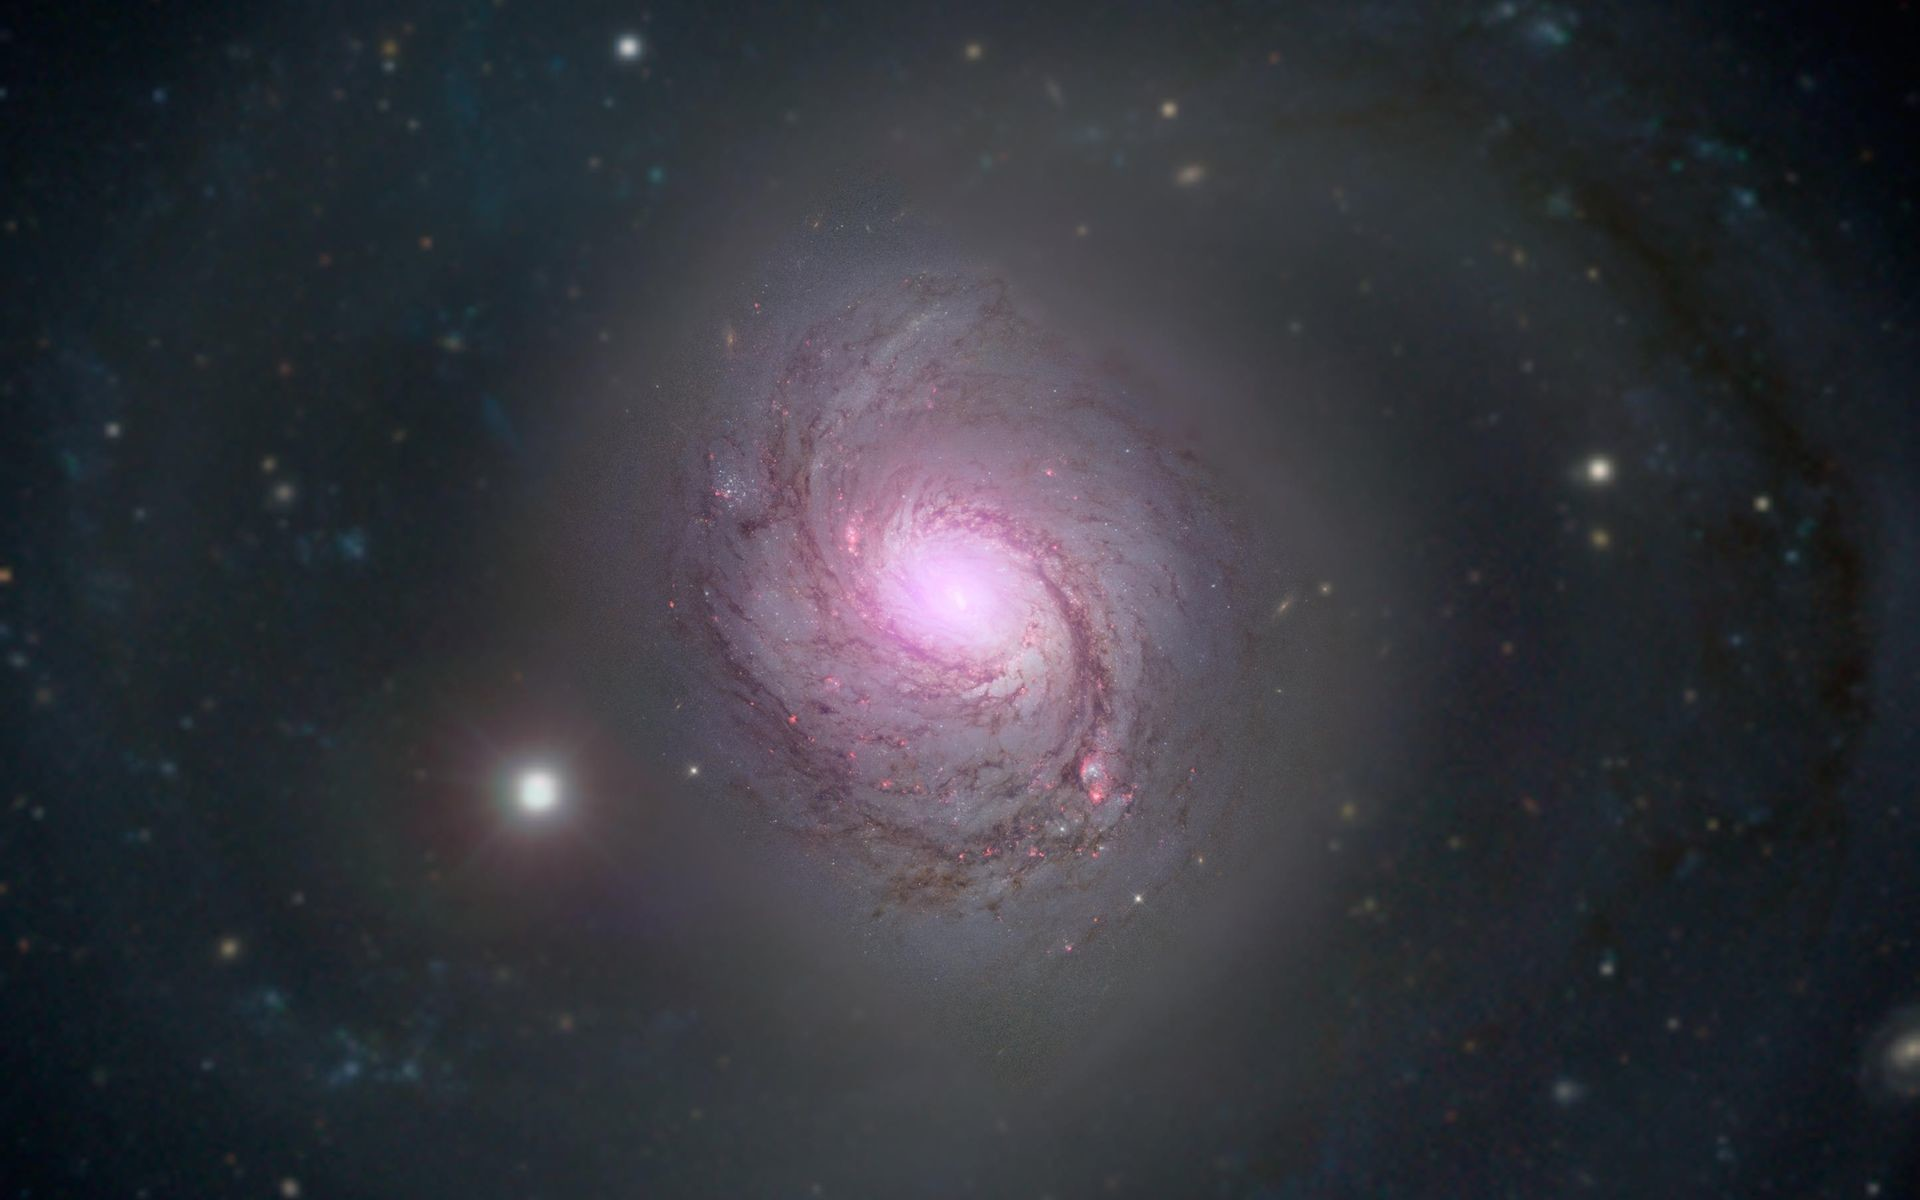 1920x1200 Galaxy NGC 1068 is shown in visible light and X-rays in this composite image